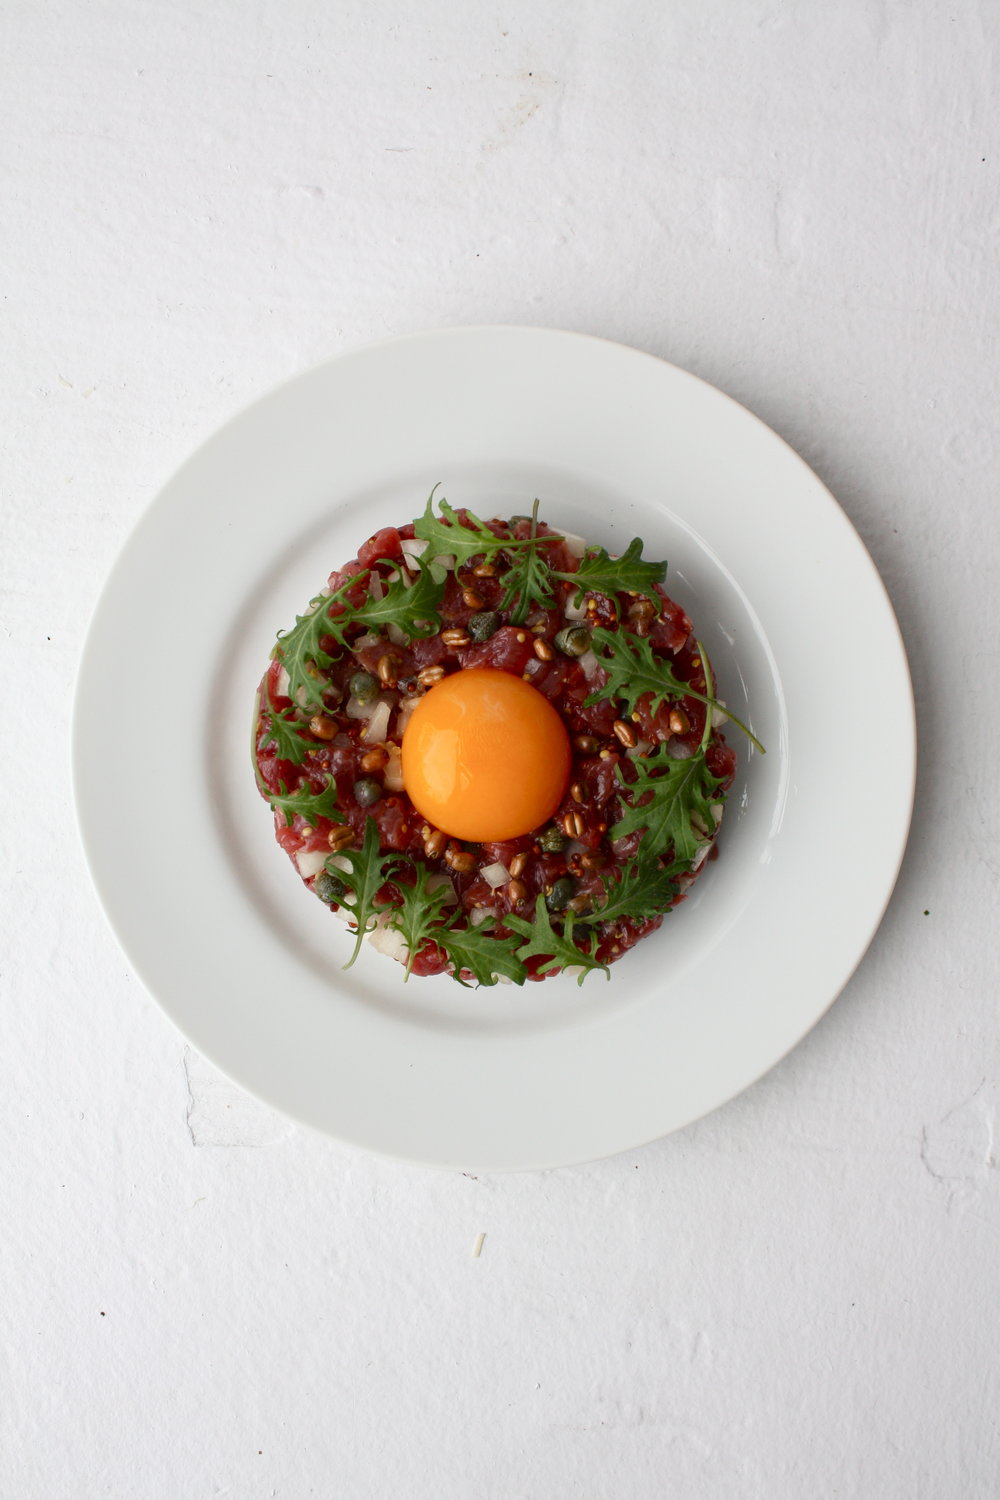 Marcel Duchamp's Steak Tartare